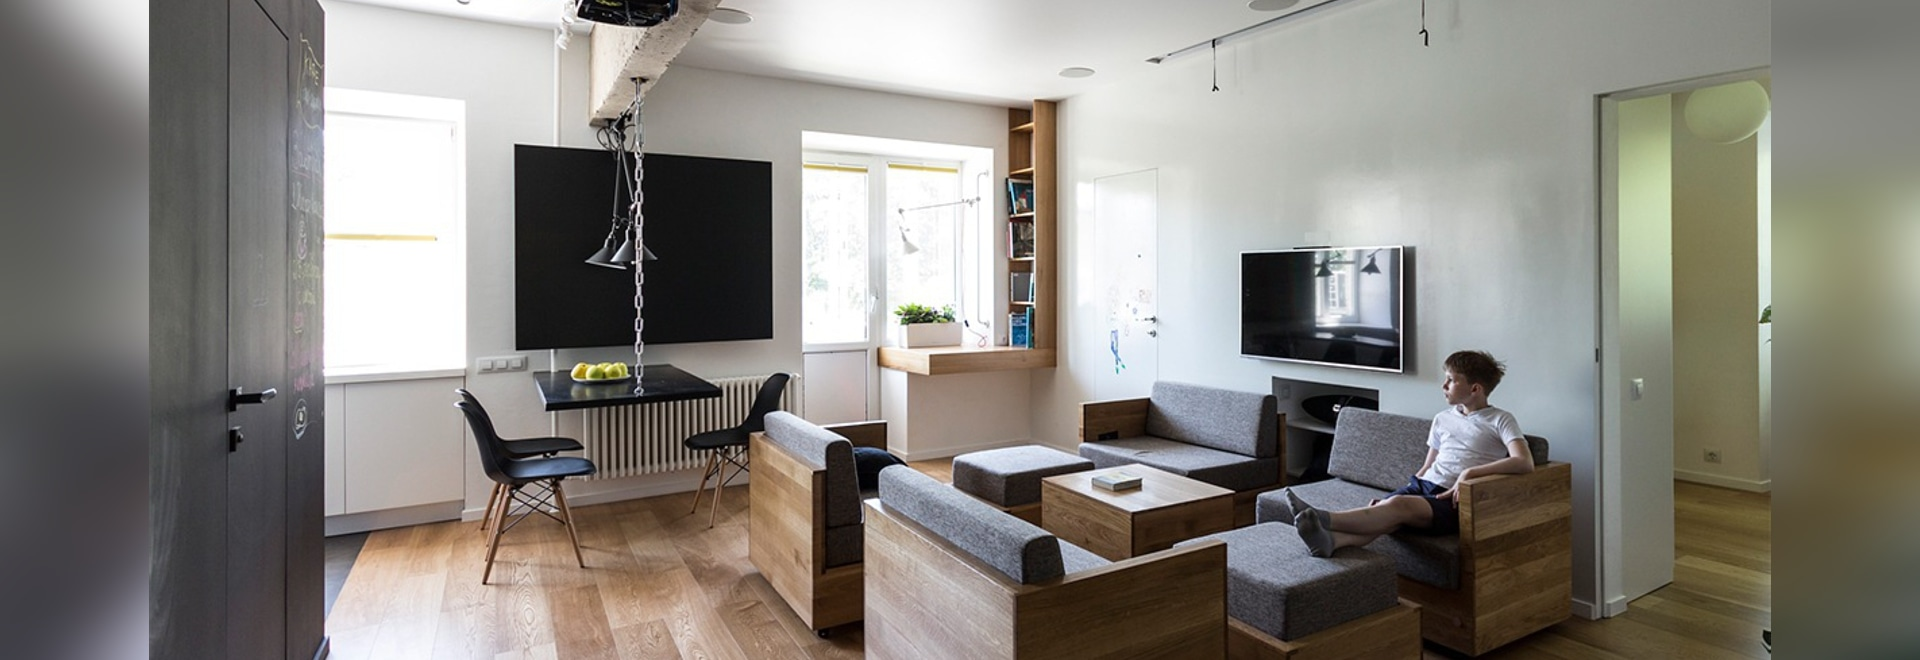 This home's most versatile feature has to be the amazing modular seating unit in the living room. Consisting of seven individual units on wheels, it allows for easy arrangement and re-arrangement t...